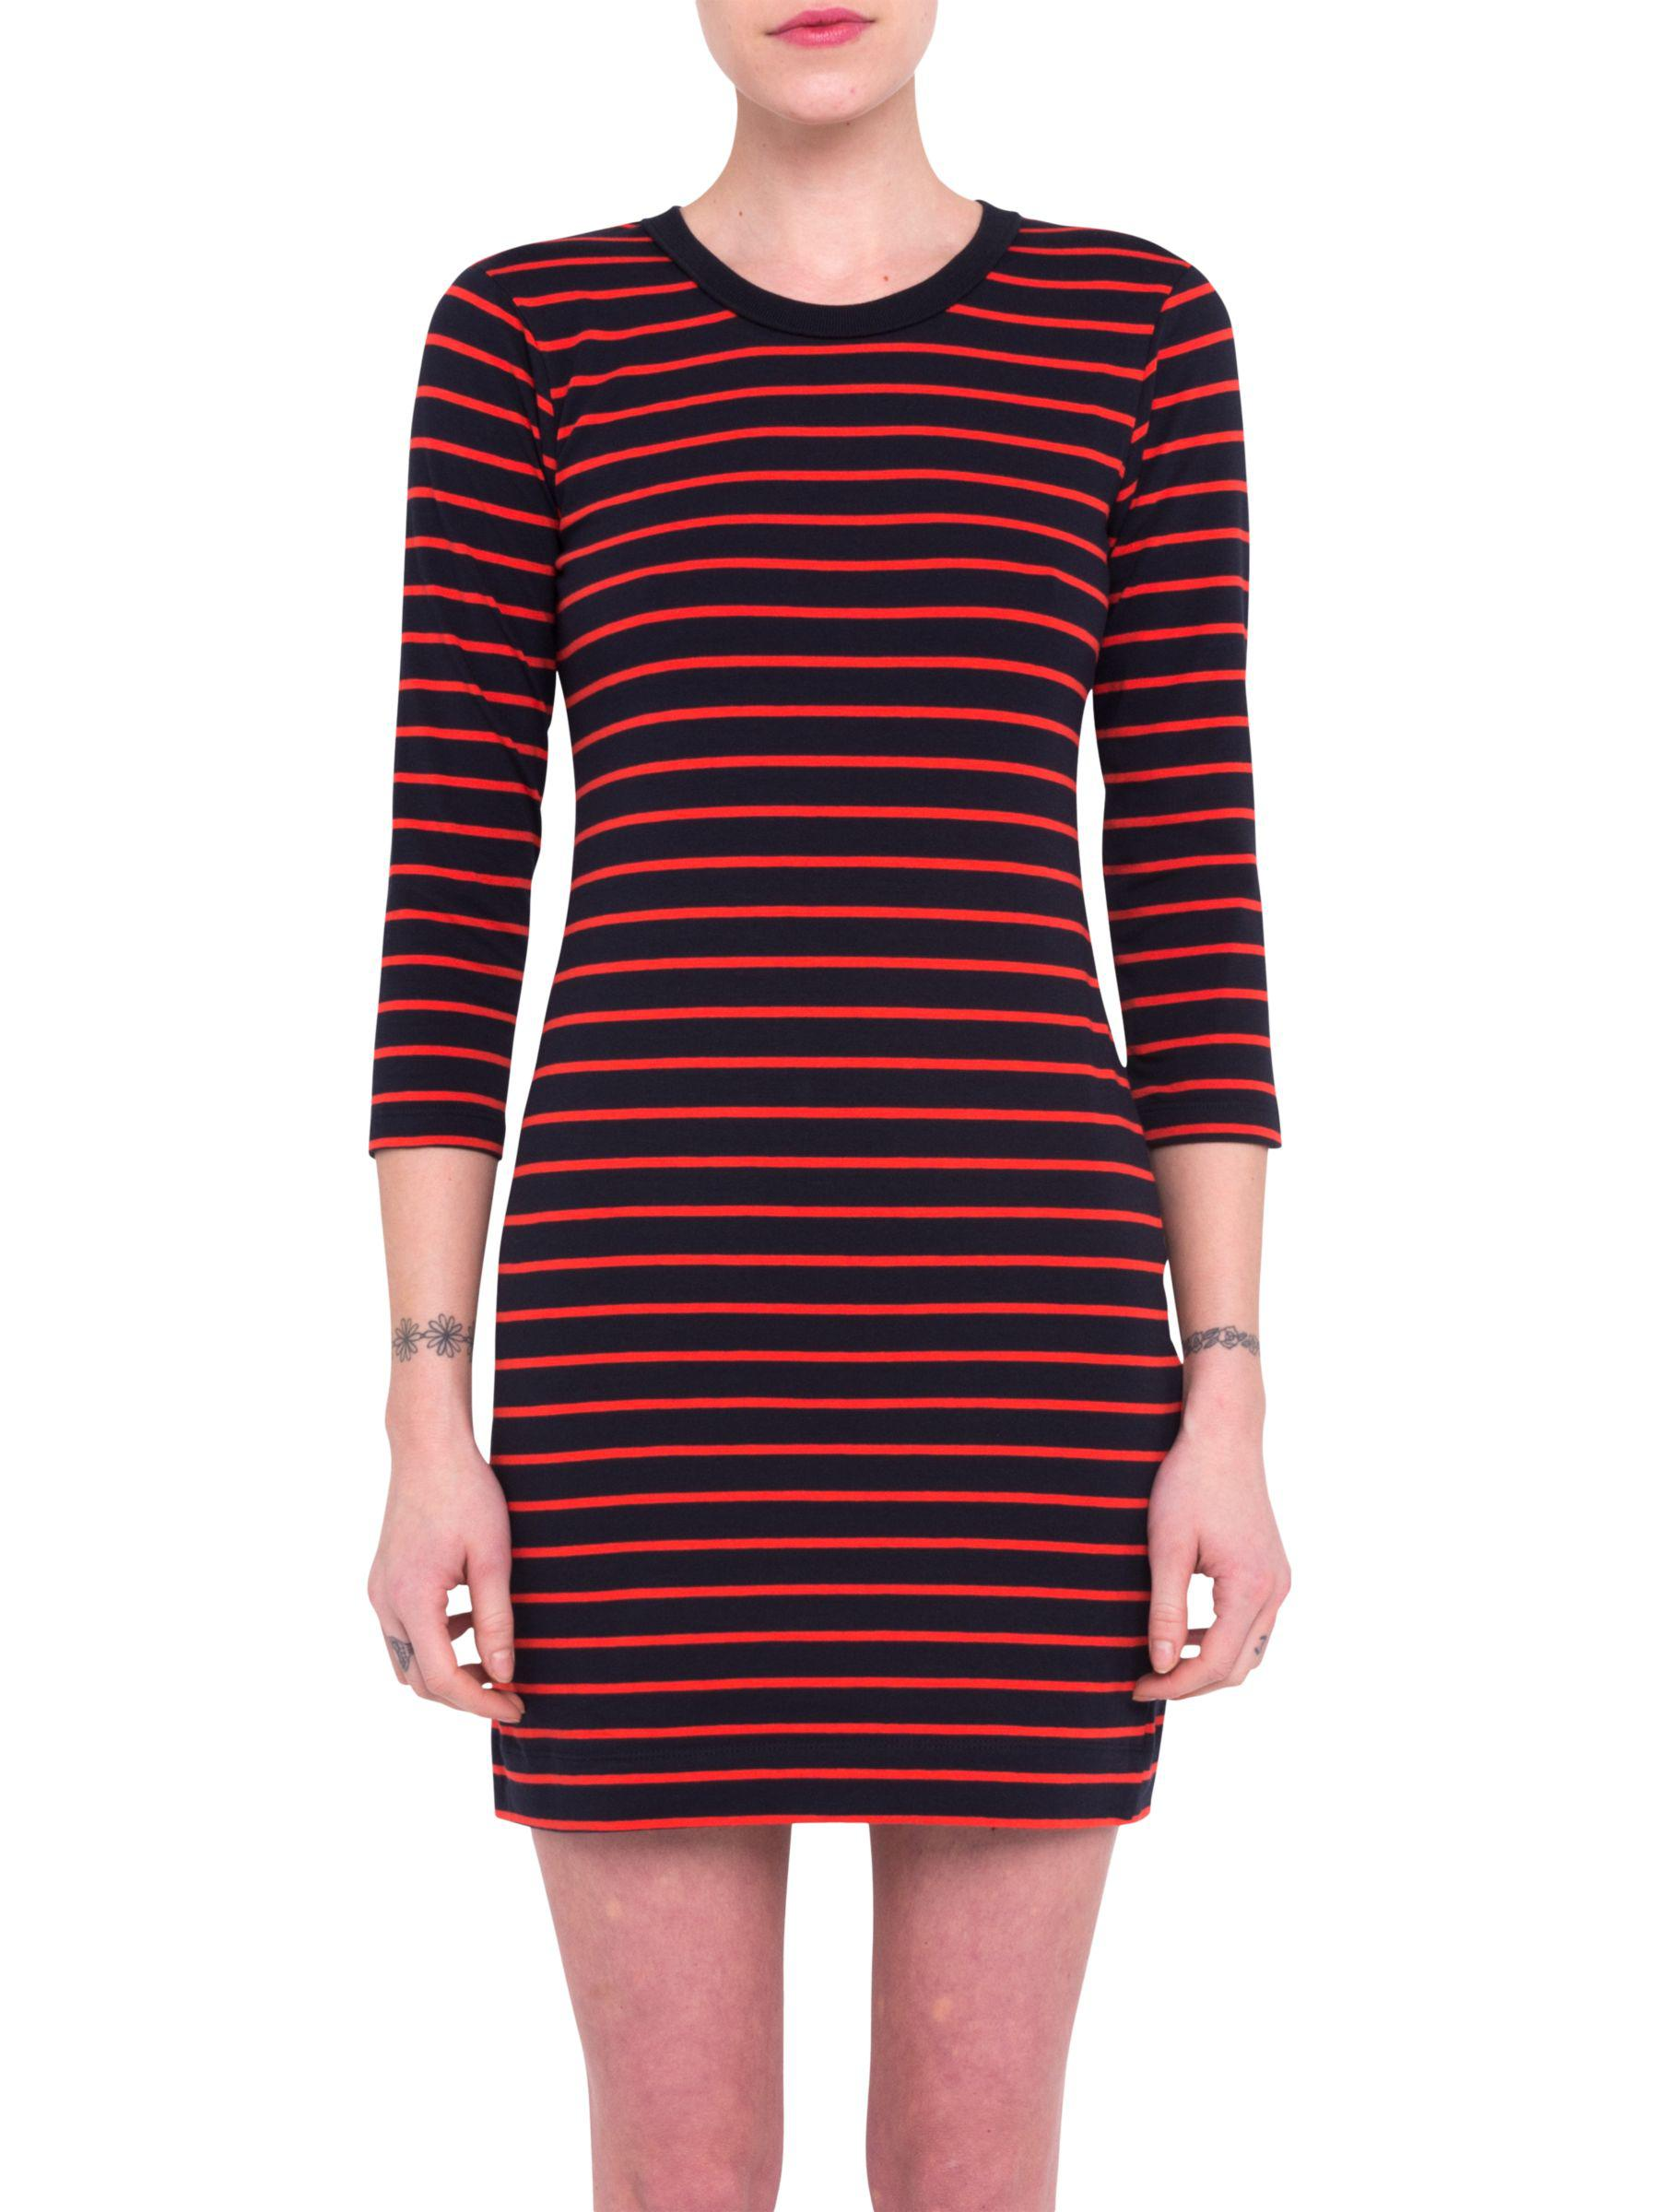 9c016545598 French Connection Red And Black Striped Dress – DACC